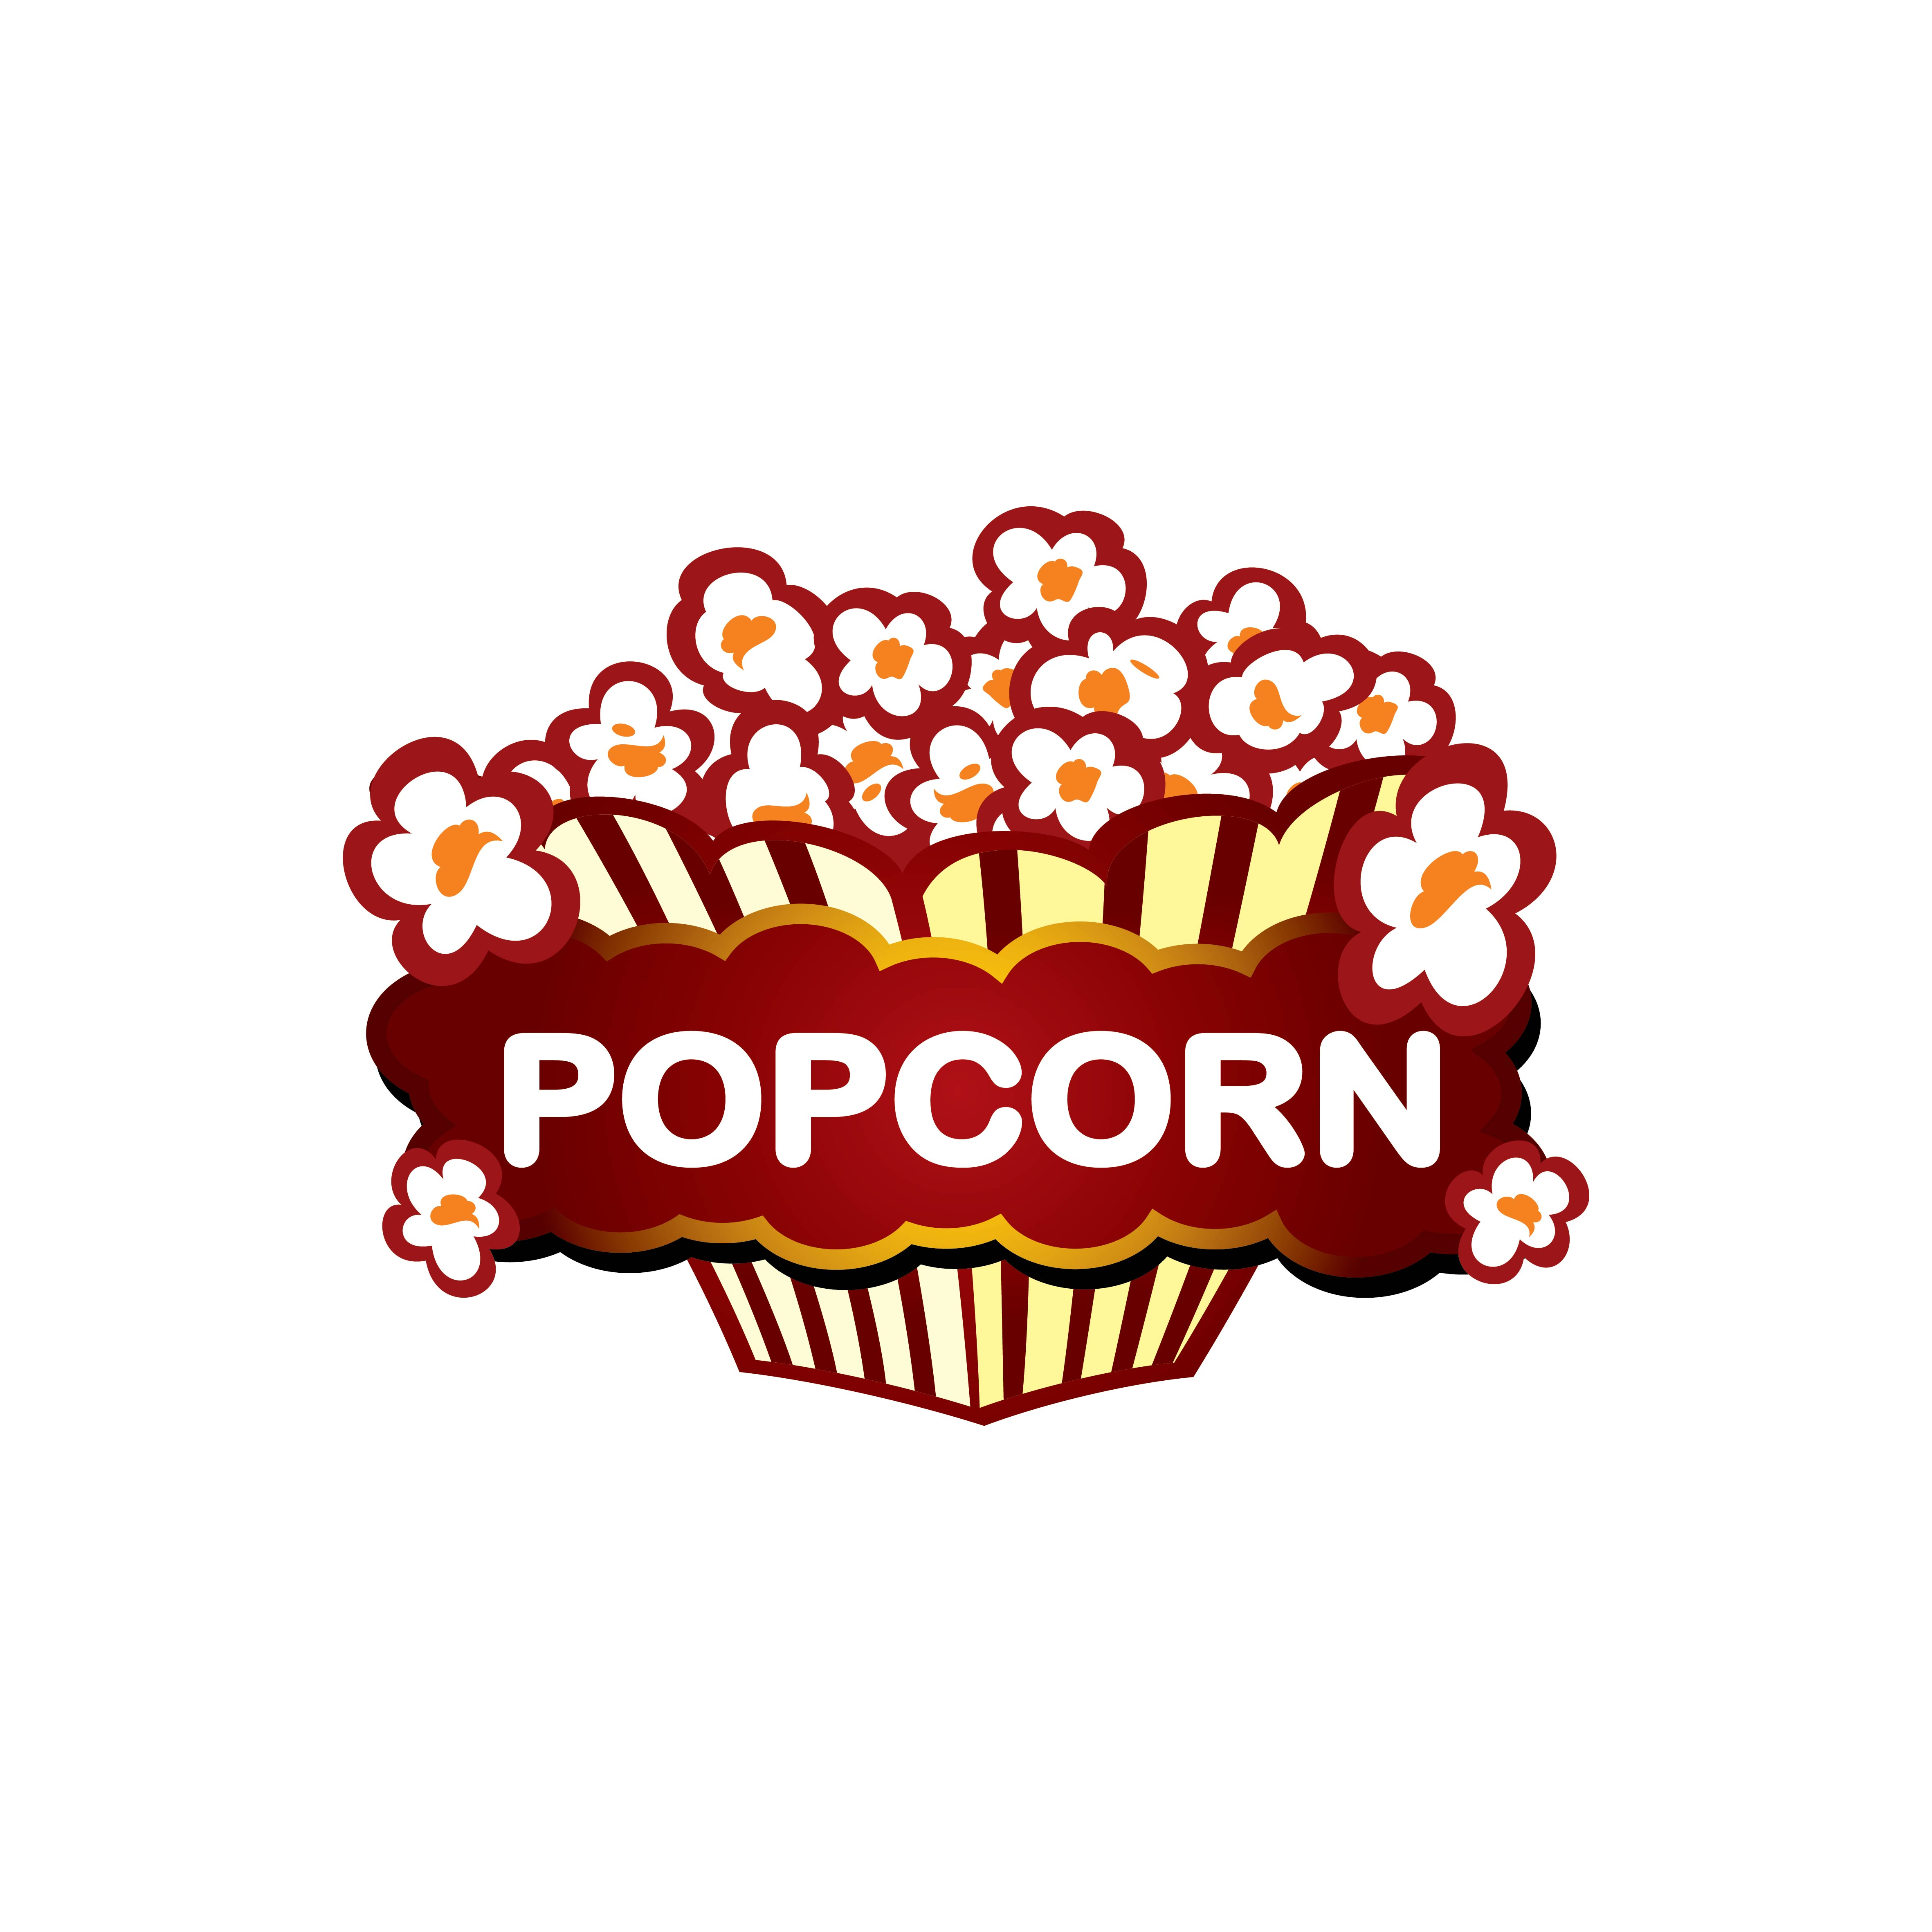 Popcorn Packaging Template And Logo